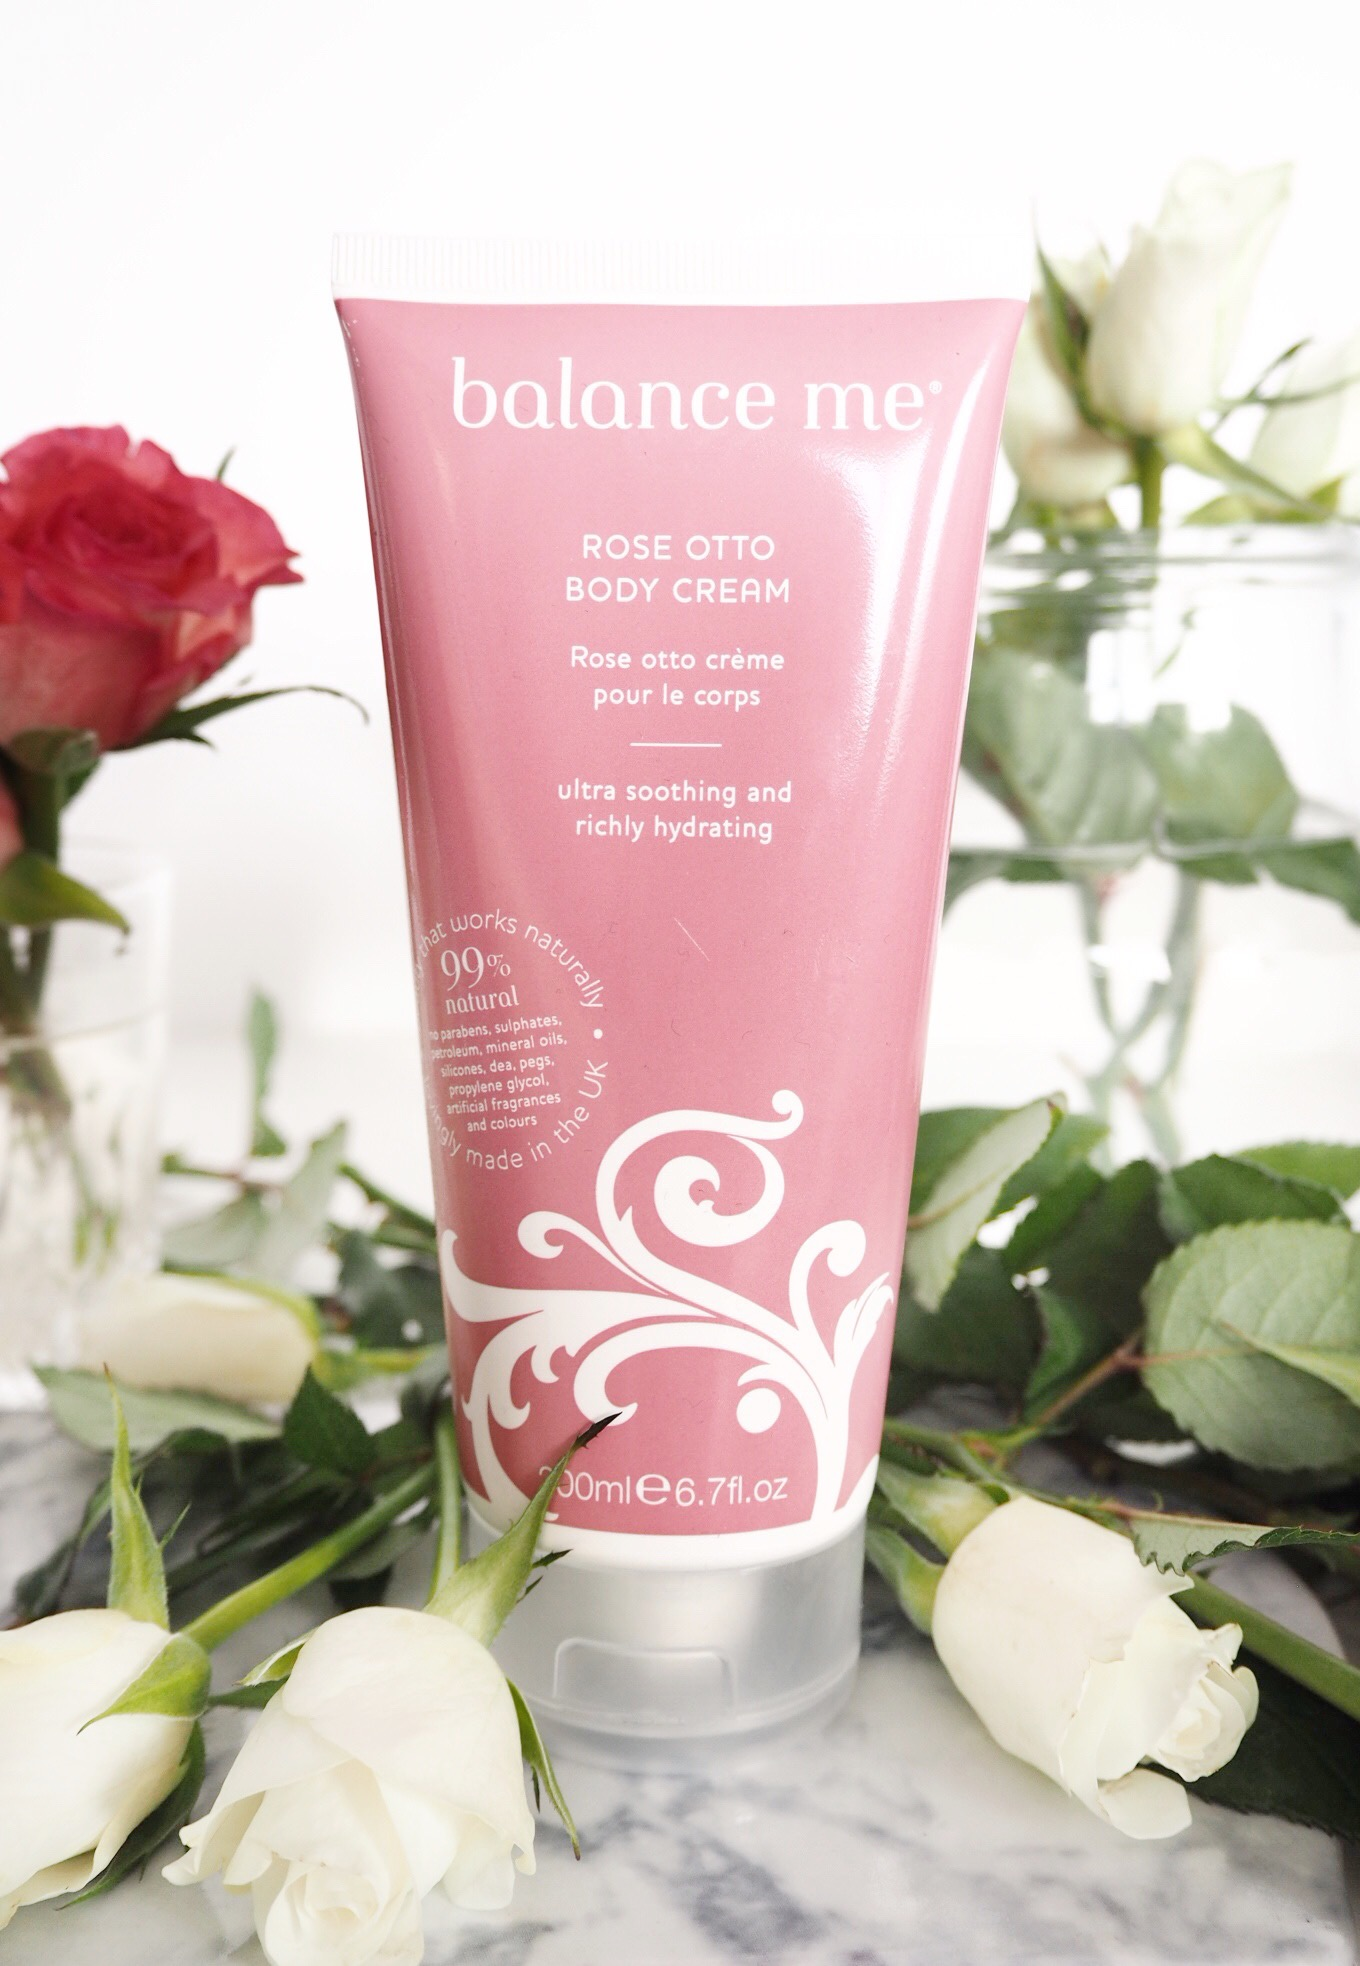 Balance Me Rose Otto Body Cream